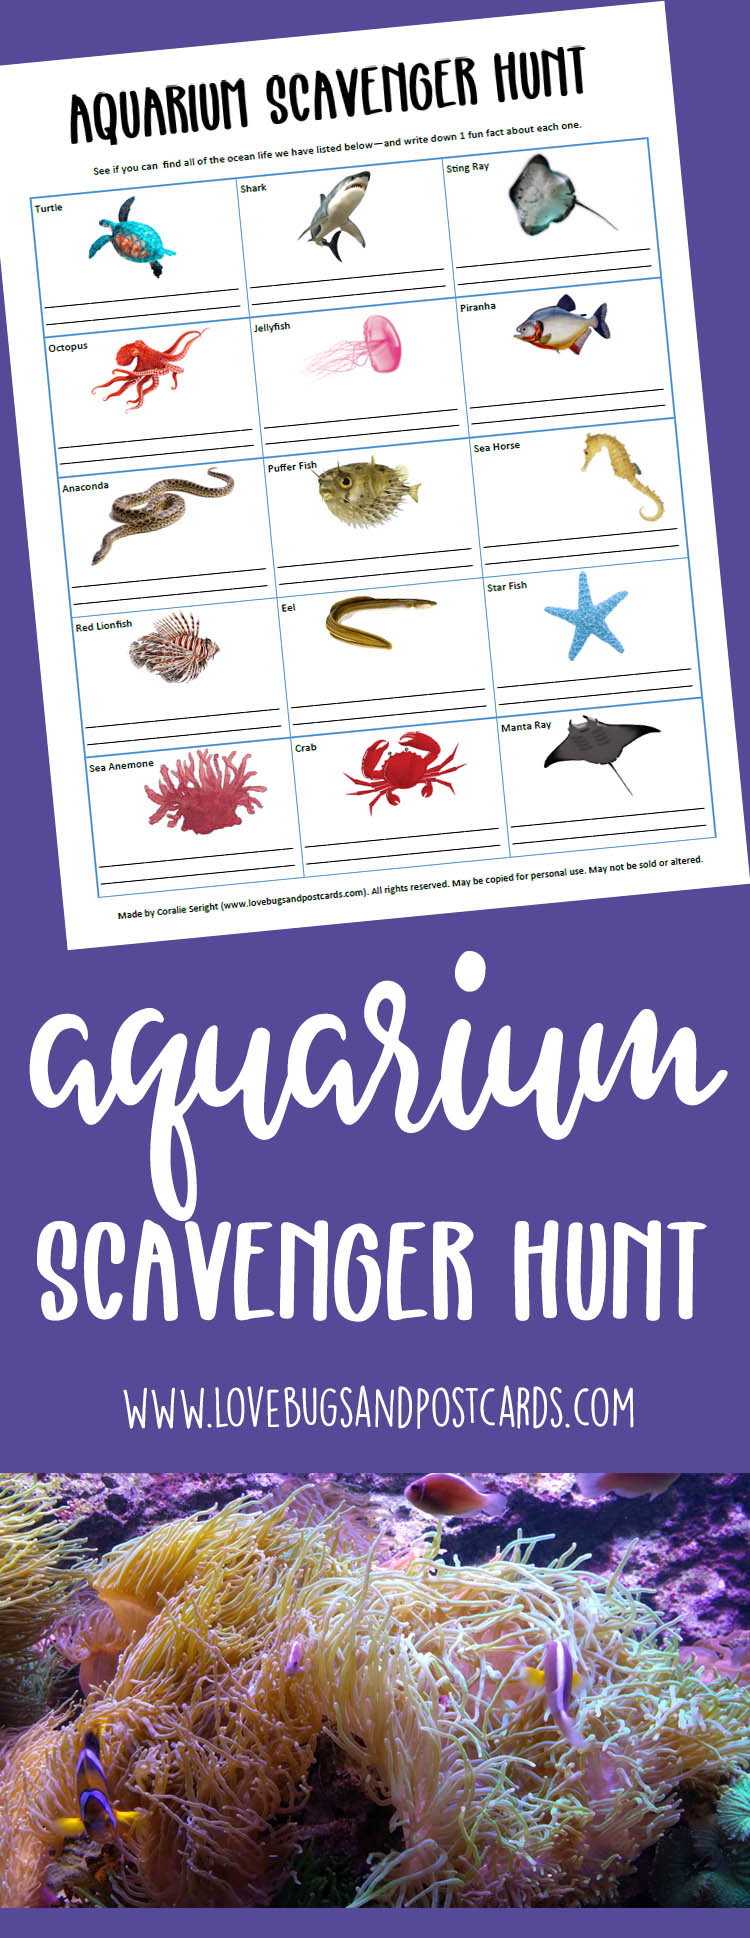 Print out this Aquarium Scavenger Hunt before you head out on your next trip to the aquarium. Great for family, friends, school and play-date groups.